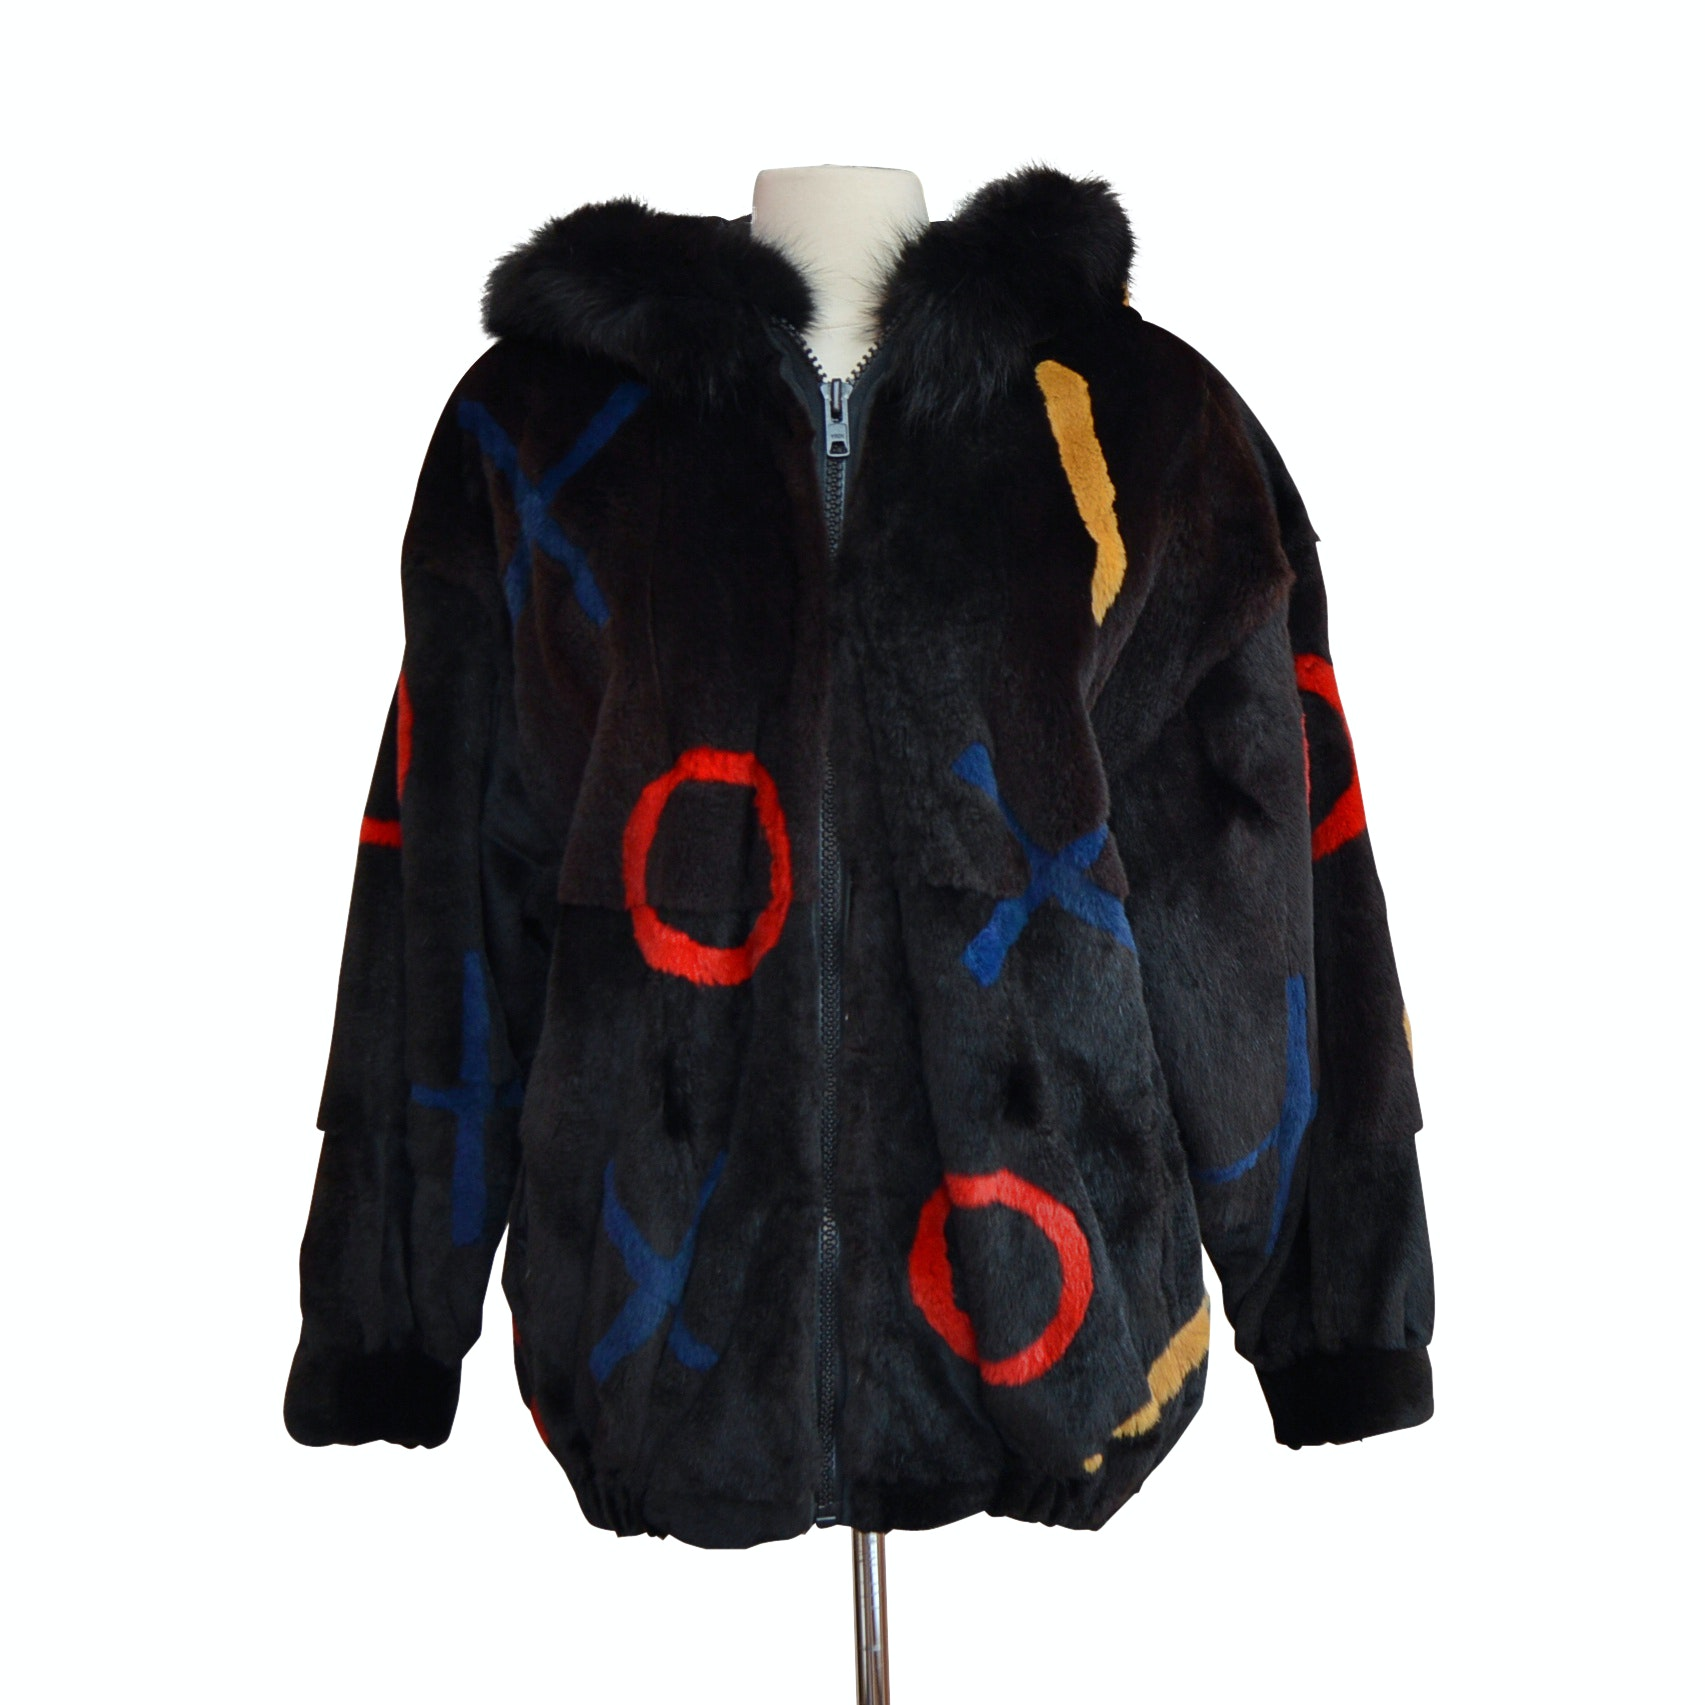 Dyed Black and Multicolor Sheared Beaver Jacket with Fox Fur Trim from Kotsovos